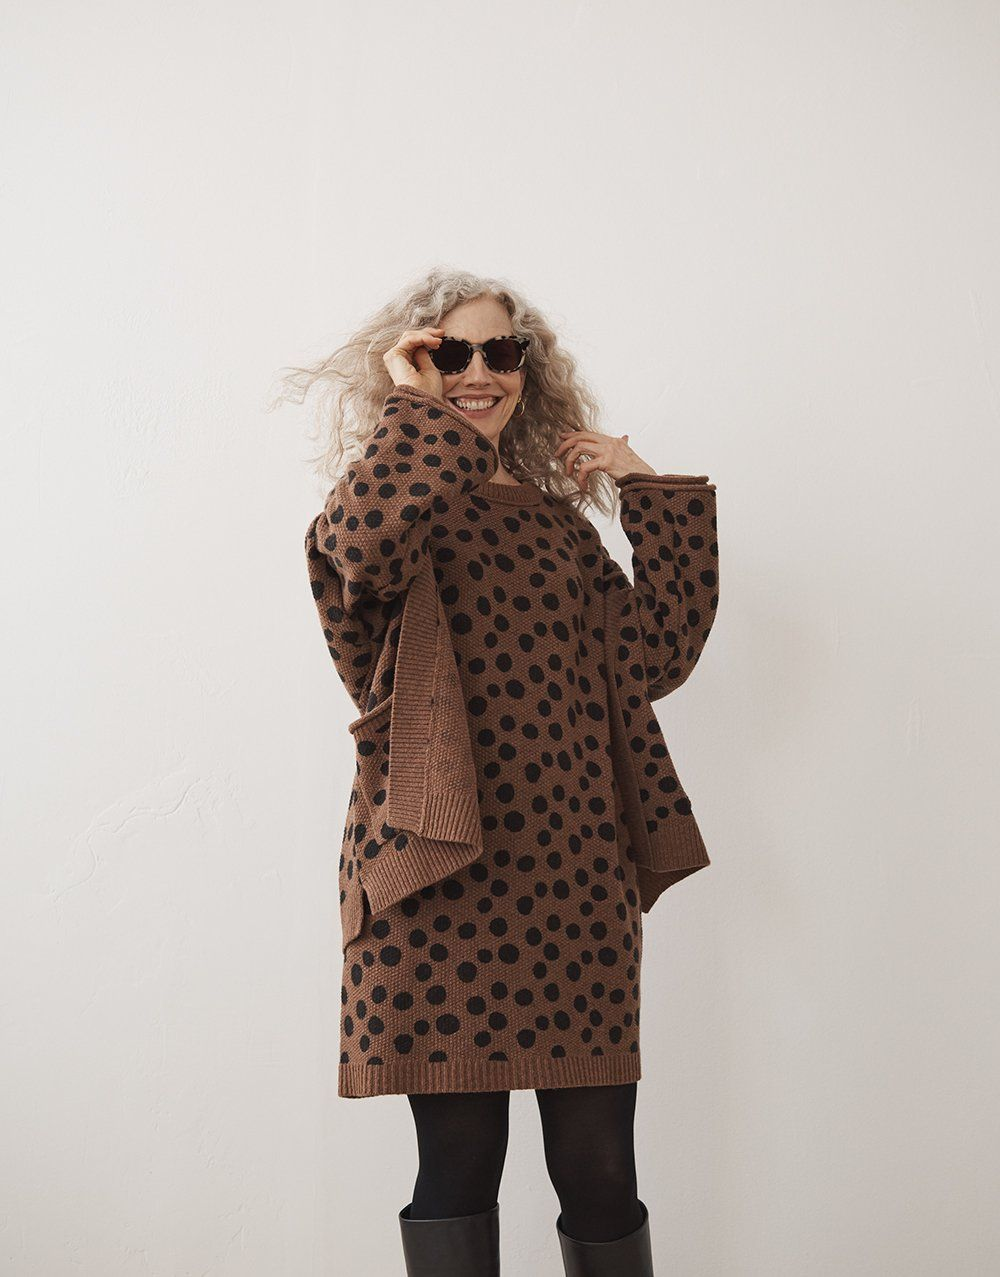 41468132ed2a madewell leopard dot sweater-dress worn with leopard dot cardigan sweater,  venice flat-frame sunglasses + the scarlett tall boots.